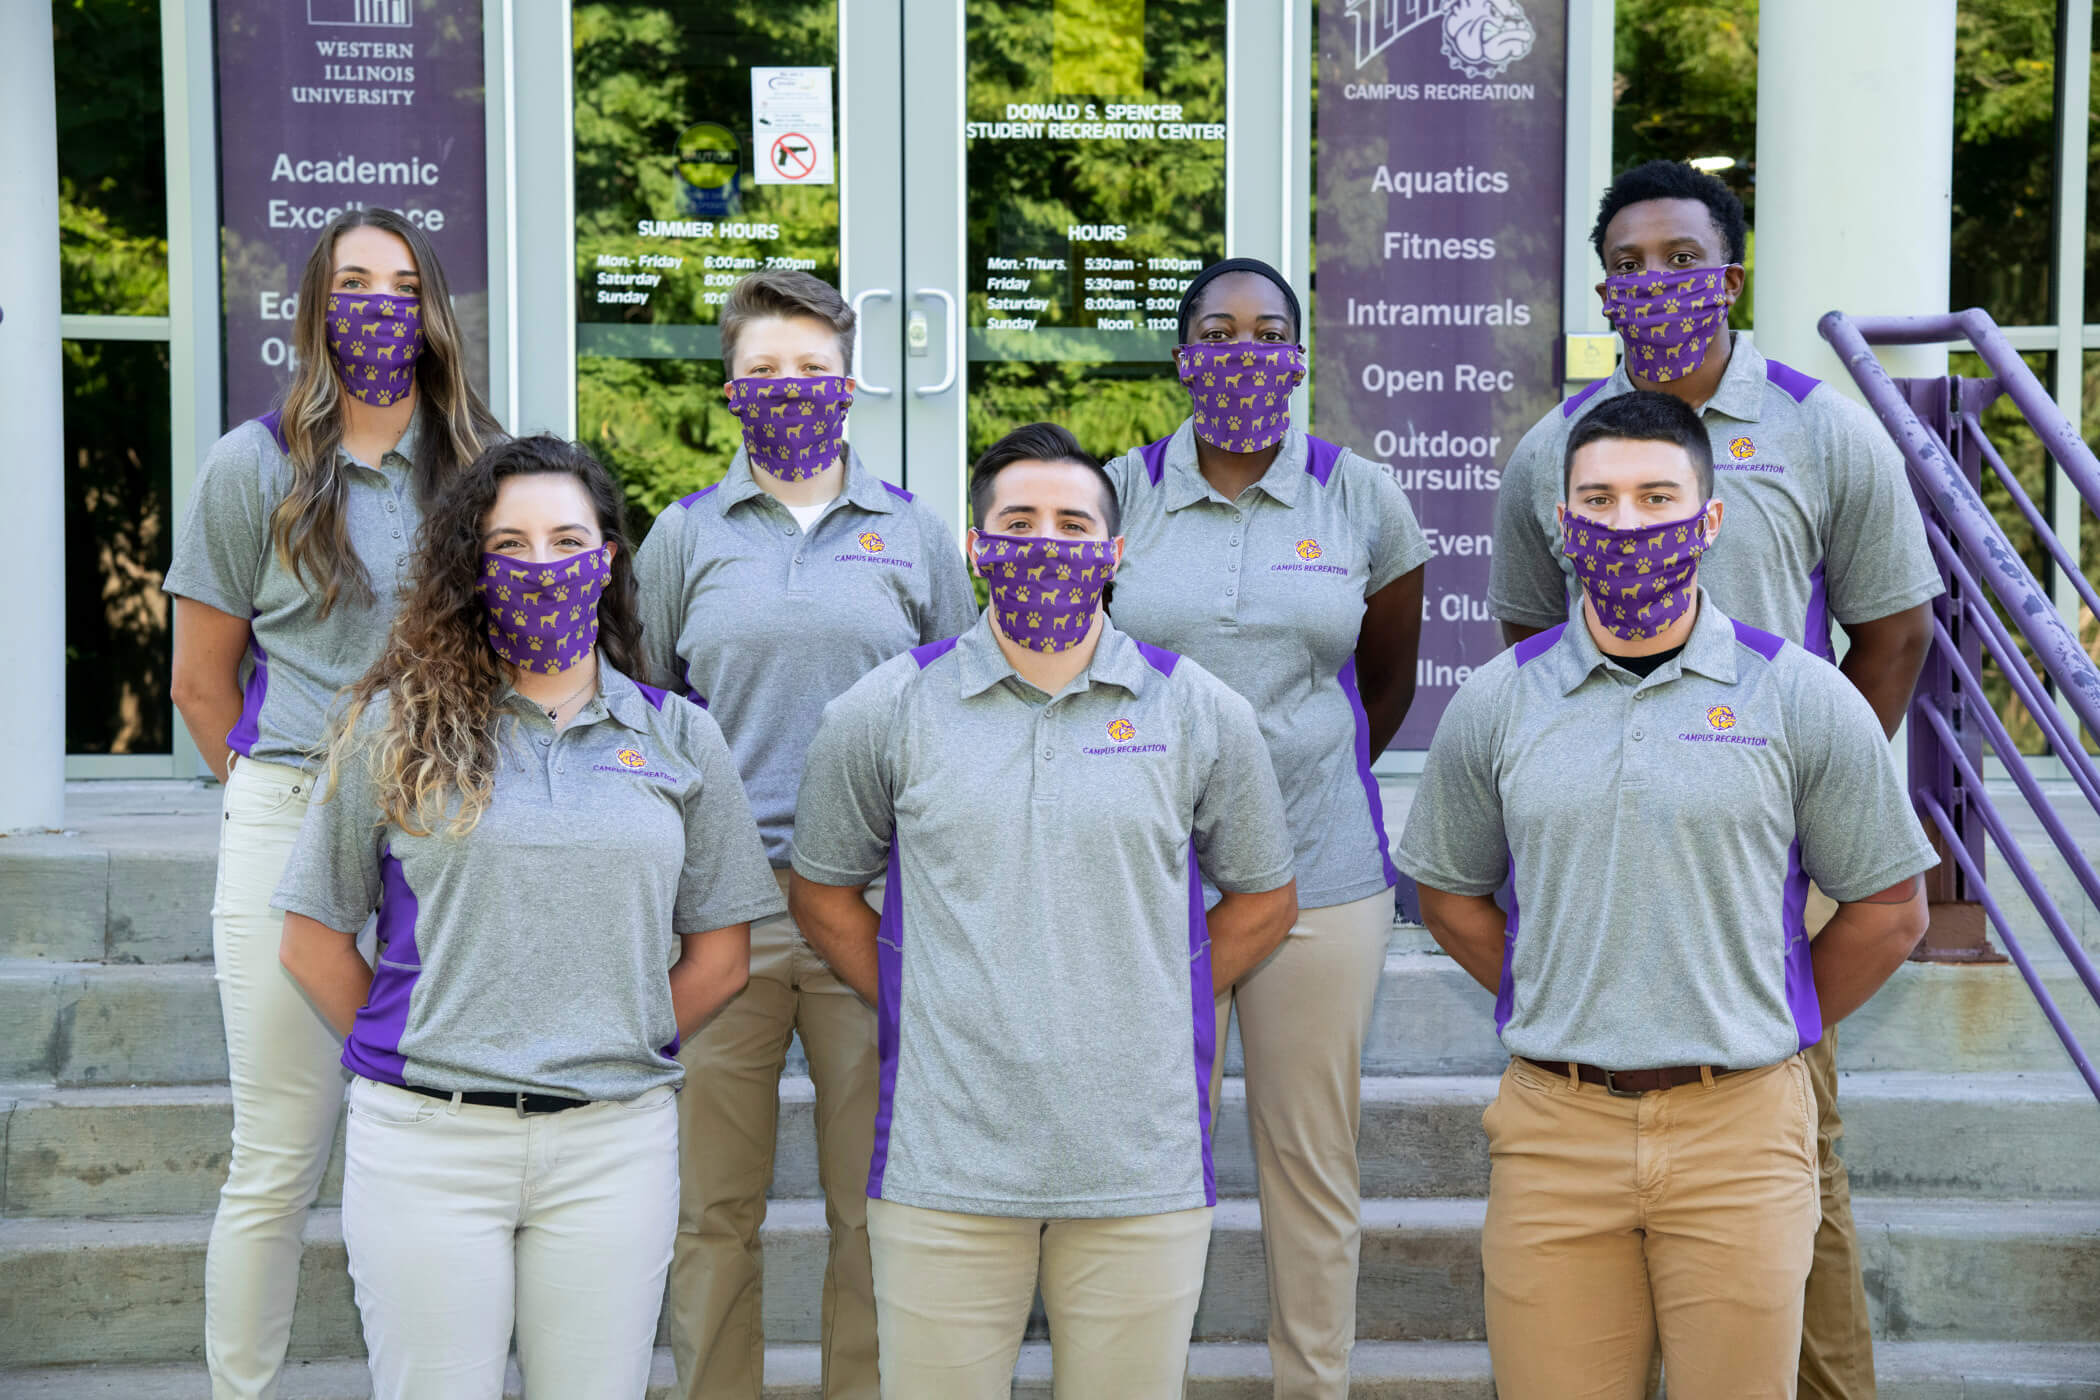 Photo of Fall 2020 Graduate Assistants standing on steps wearing masks